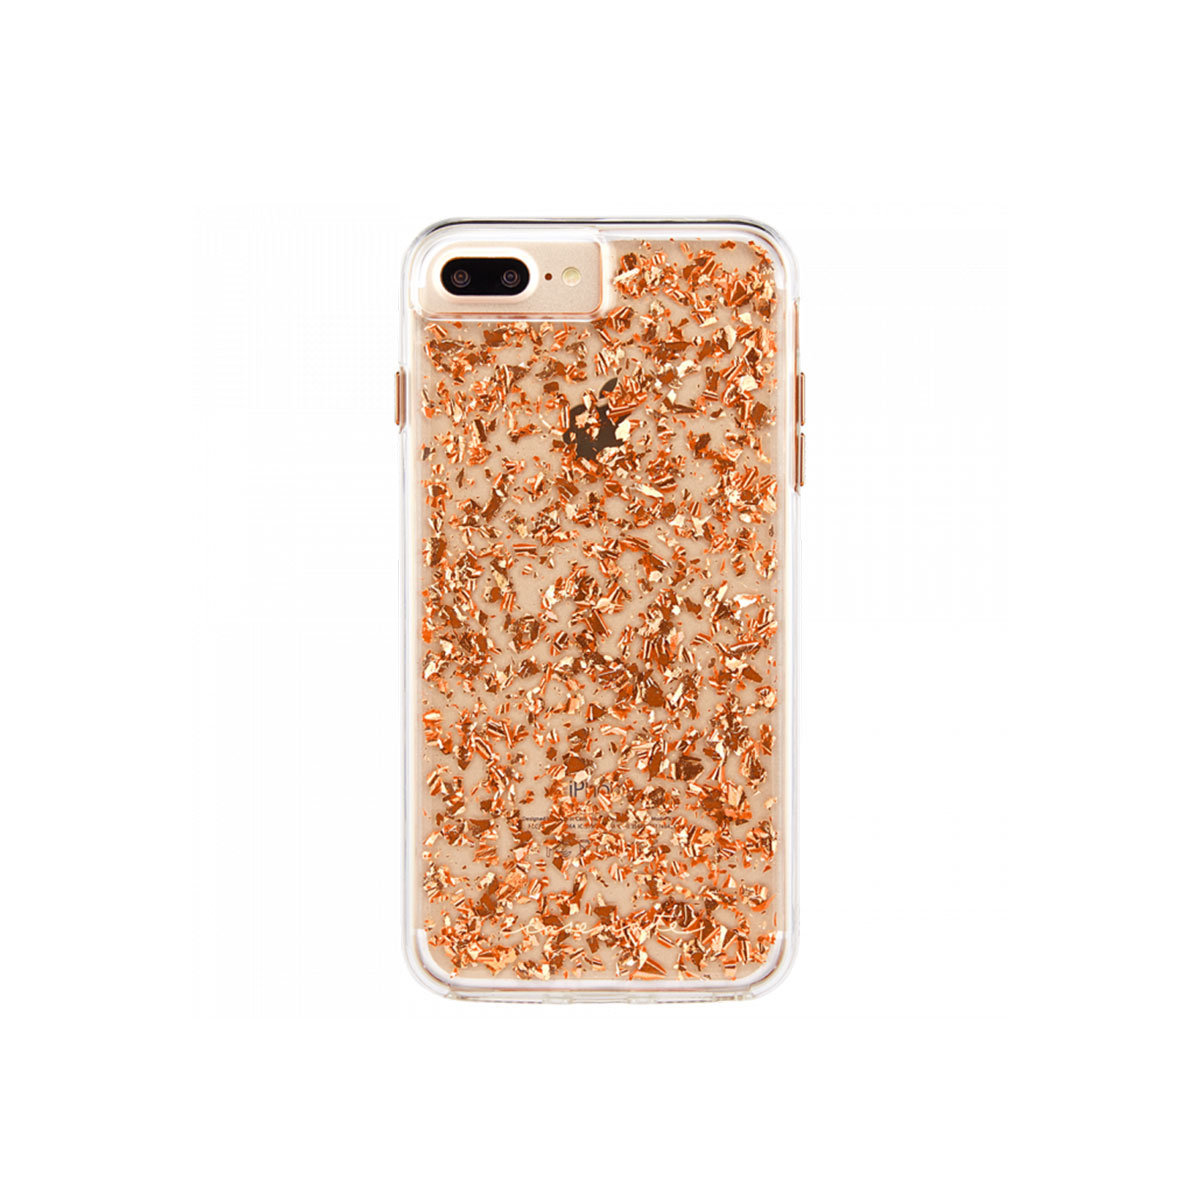 Case-Mate - iPhone 7 Plus Karat - Rose Gold / Clear